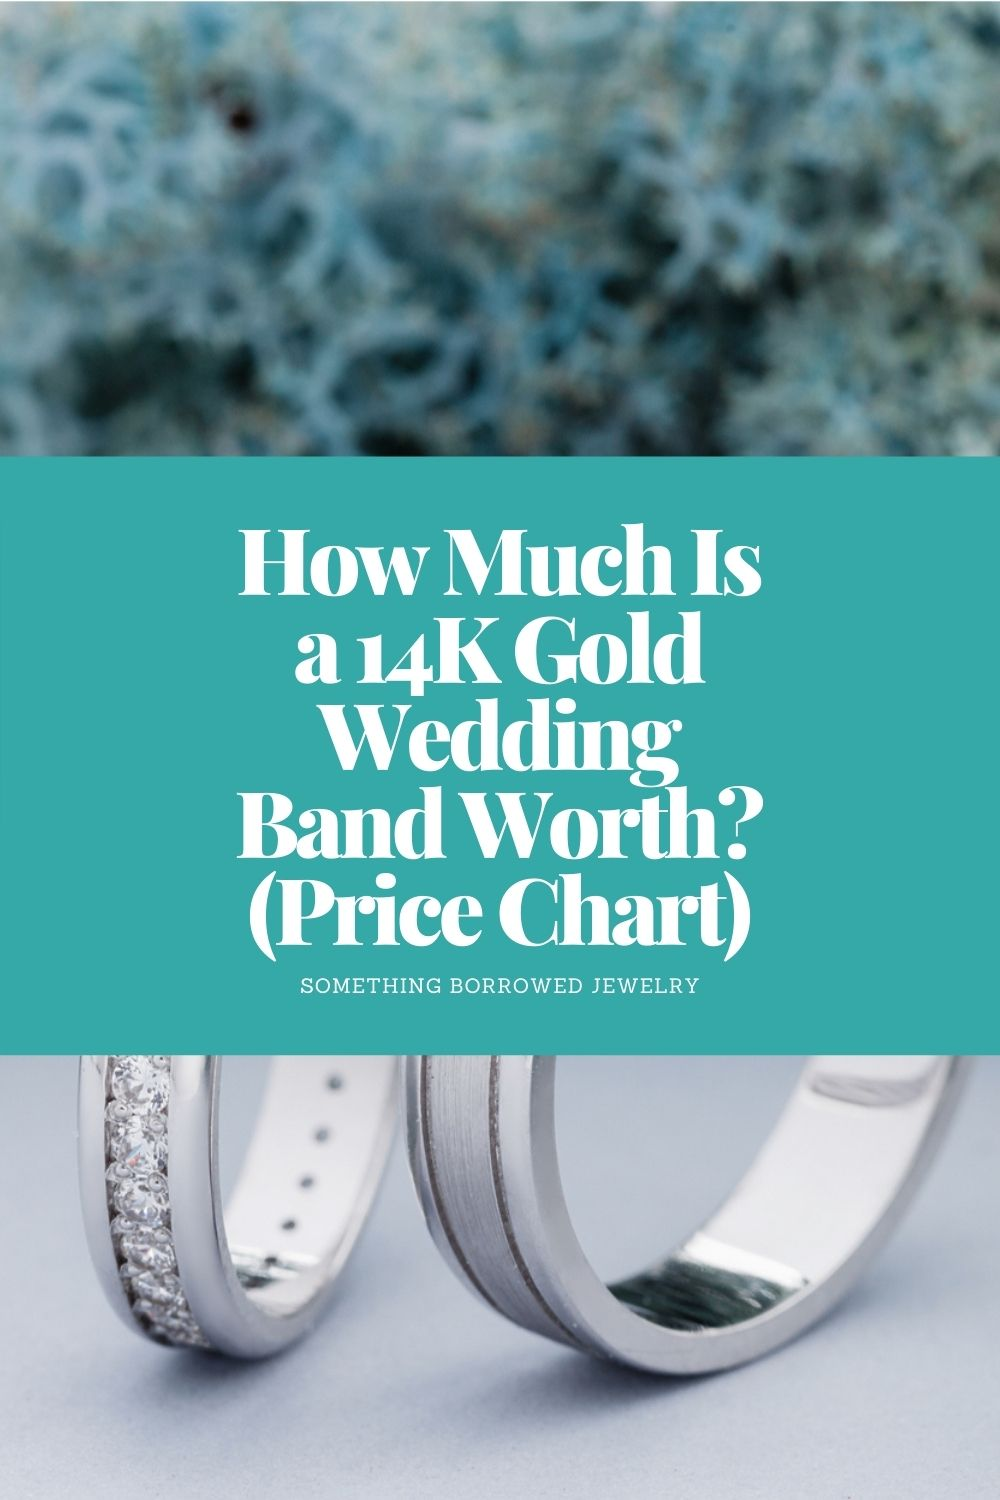 How Much Is a 14K Gold Wedding Band Worth (Price Chart) pin 2